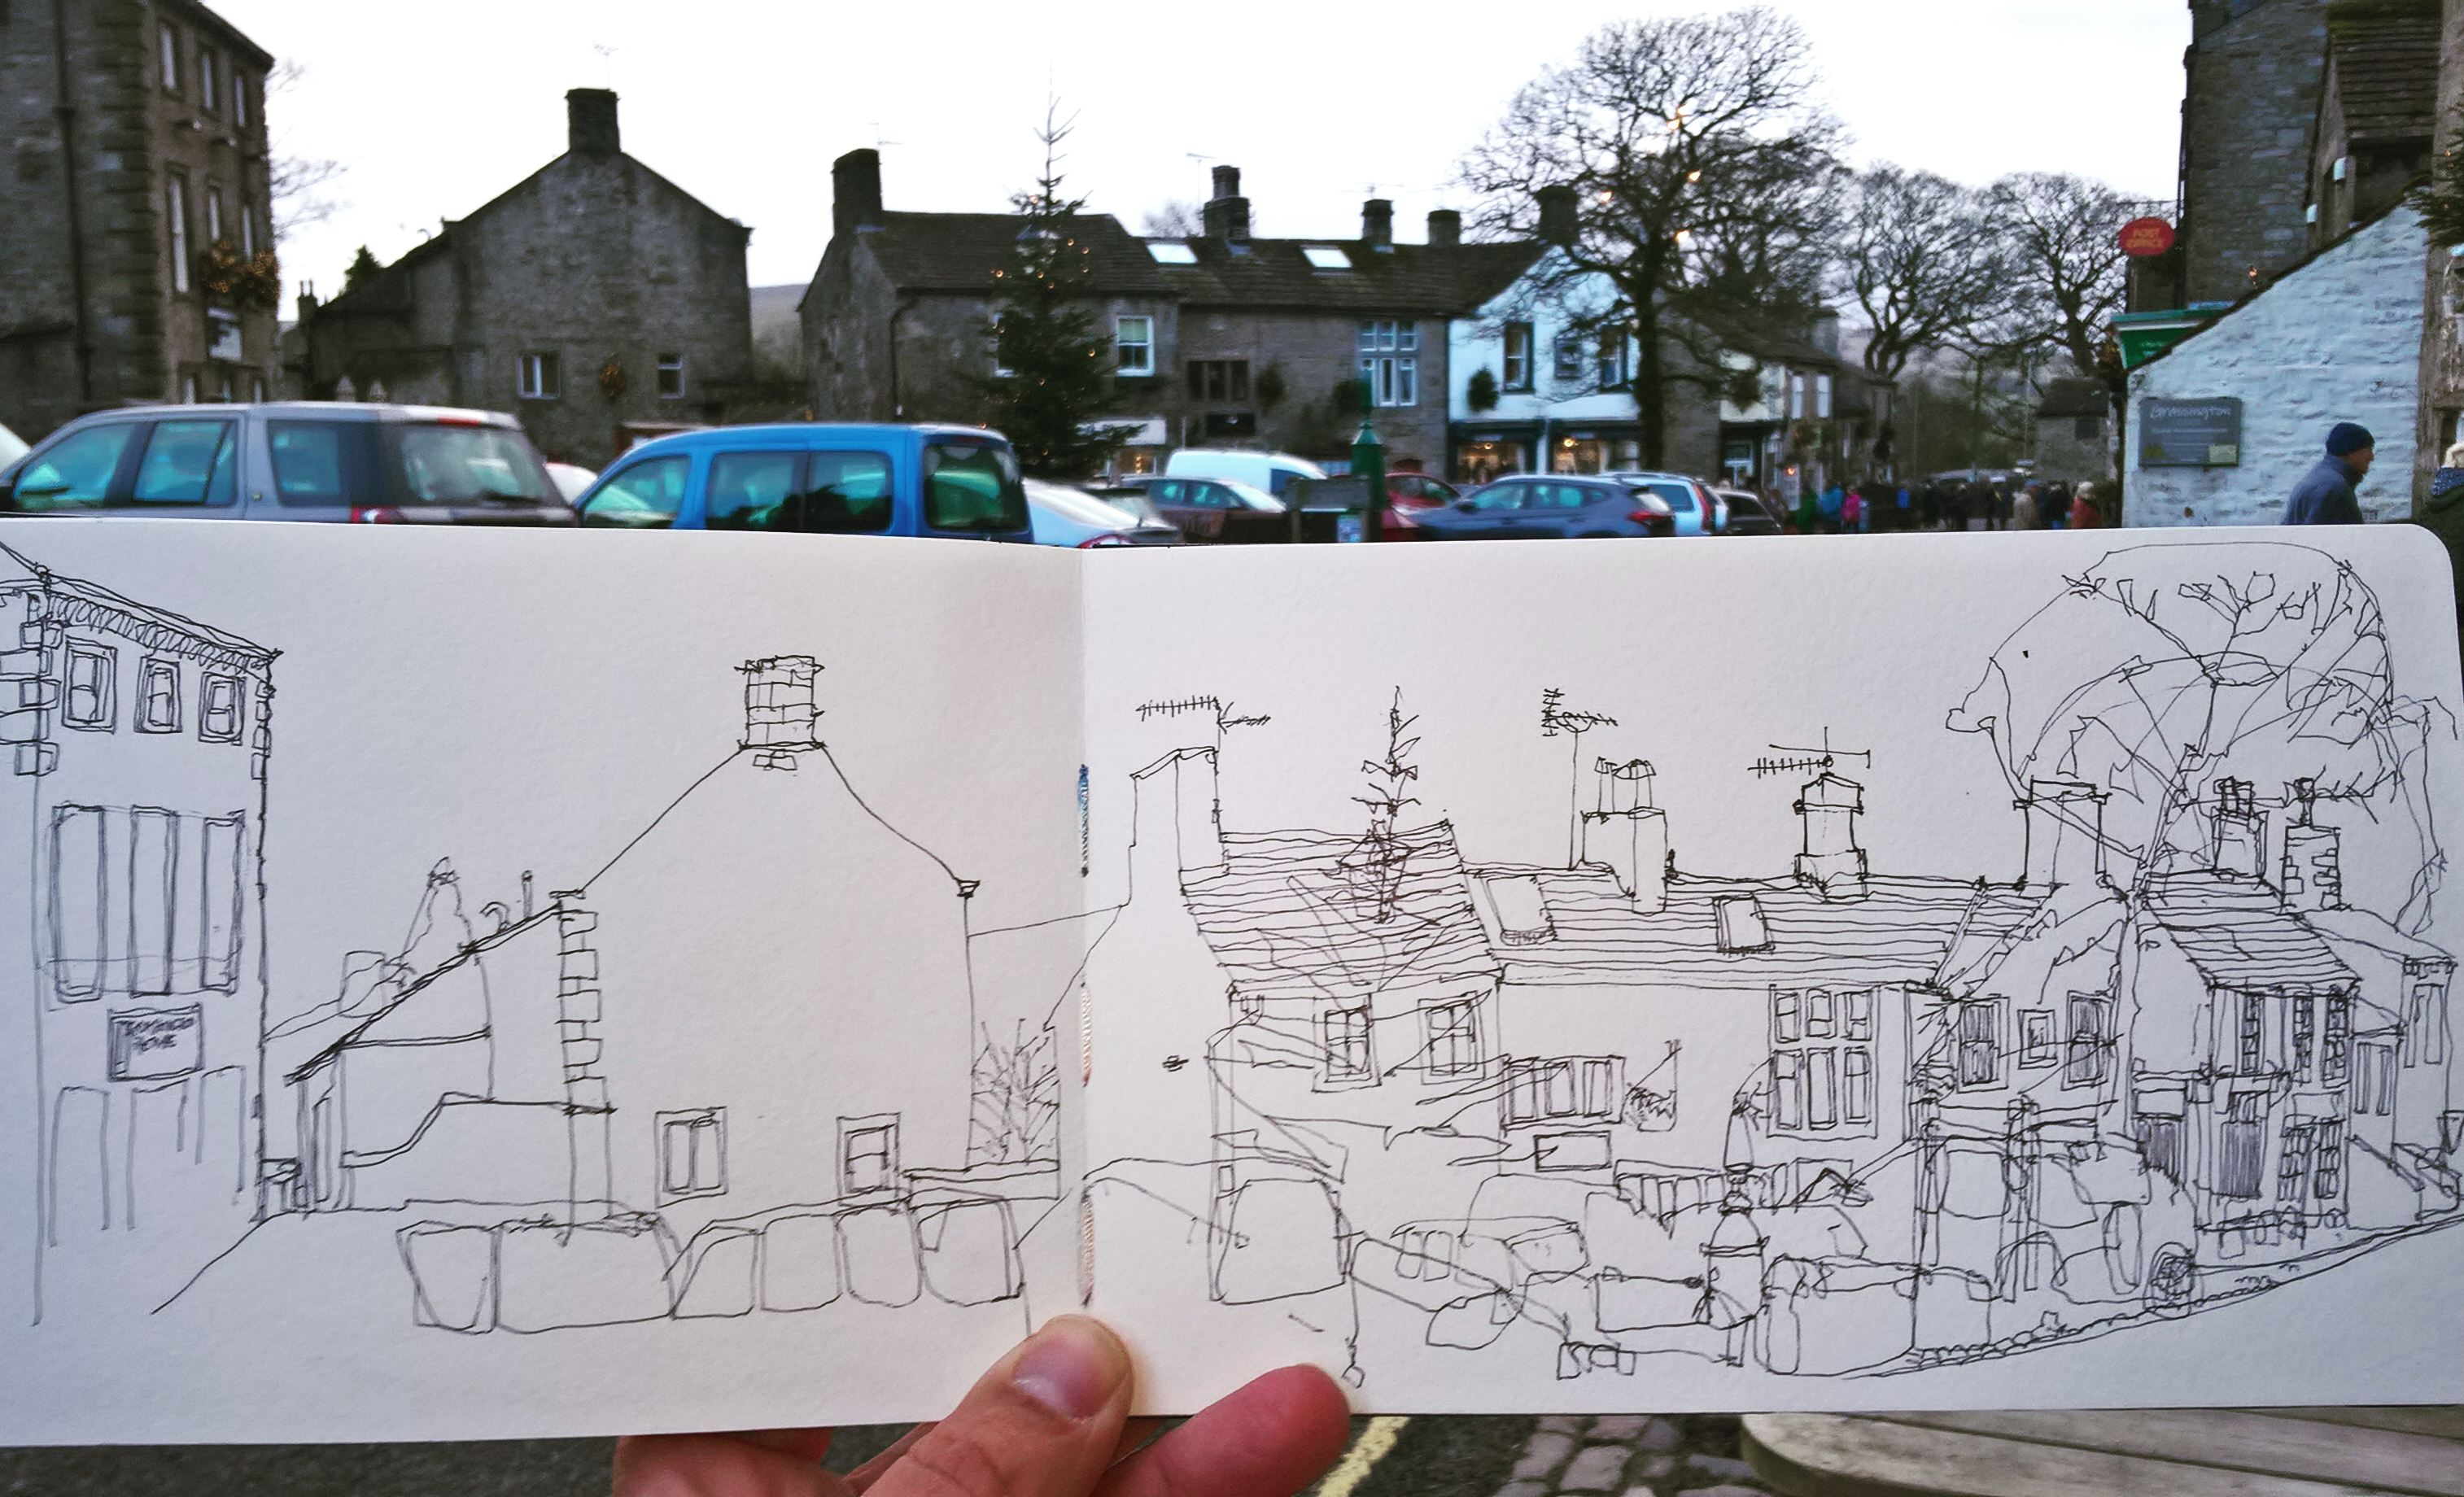 Grassington Village, New Year's Eve